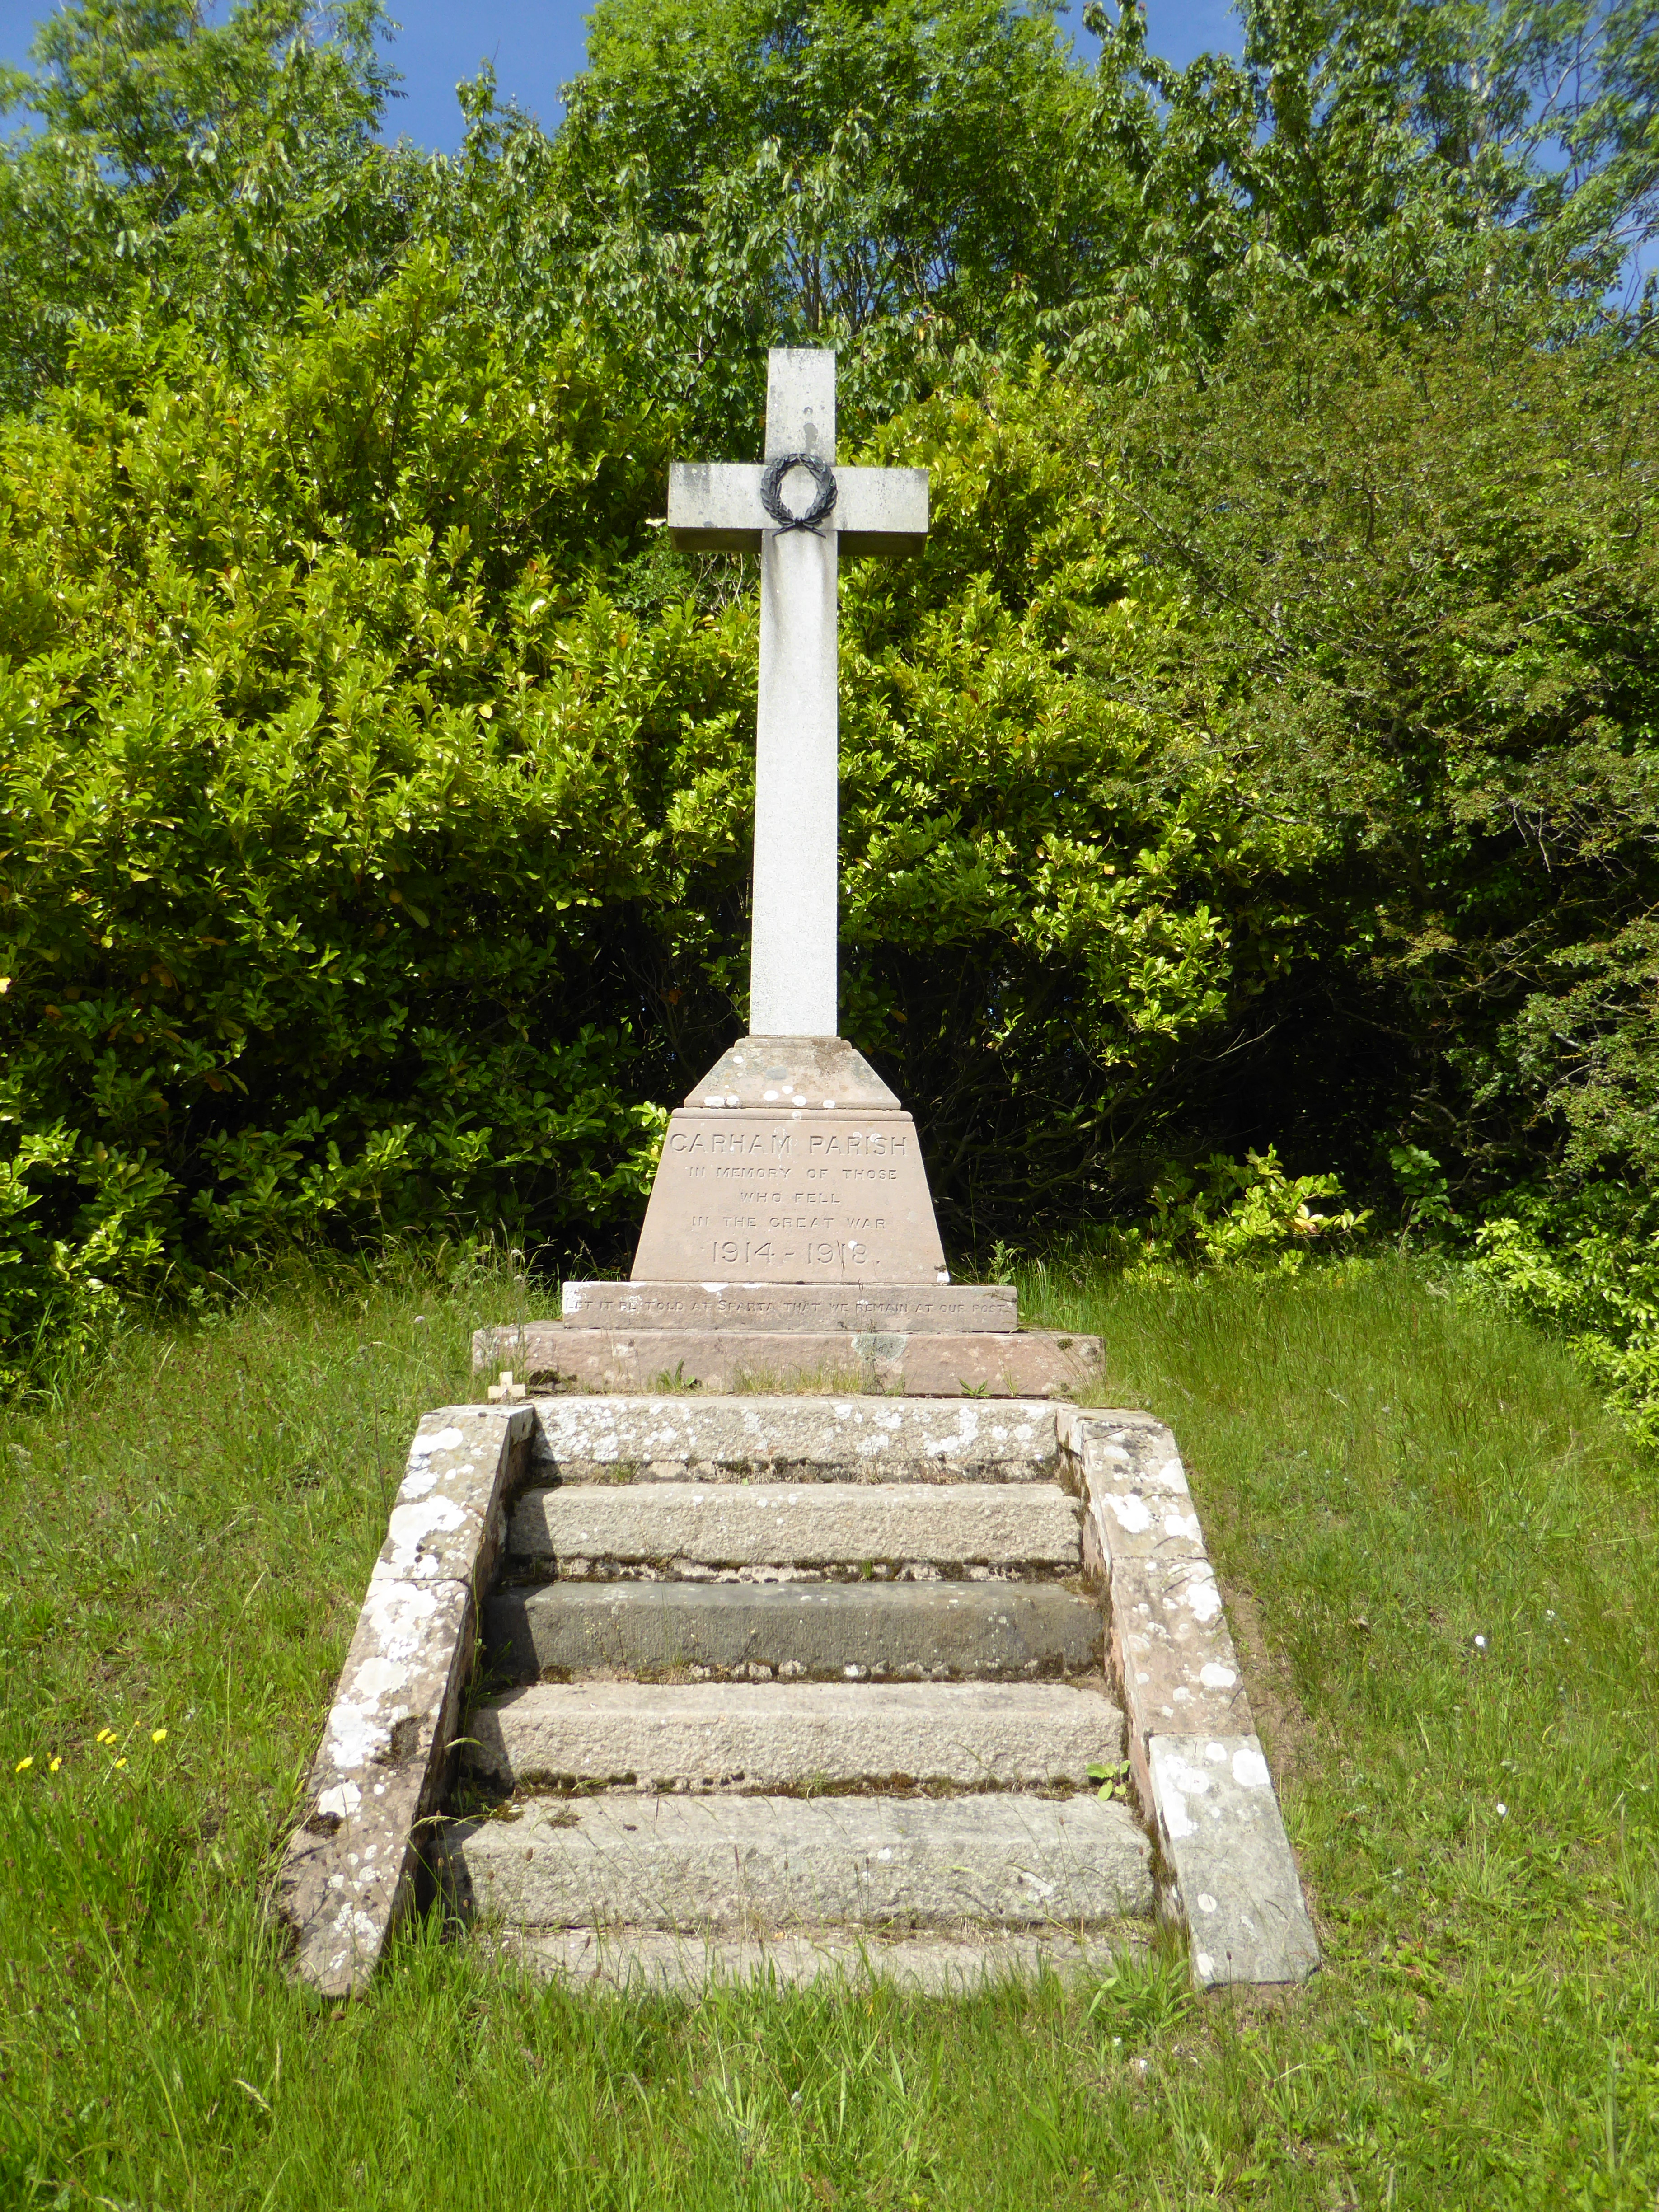 Carham War Memorial at East Learmouth is in the form of a latin cross on a plinth